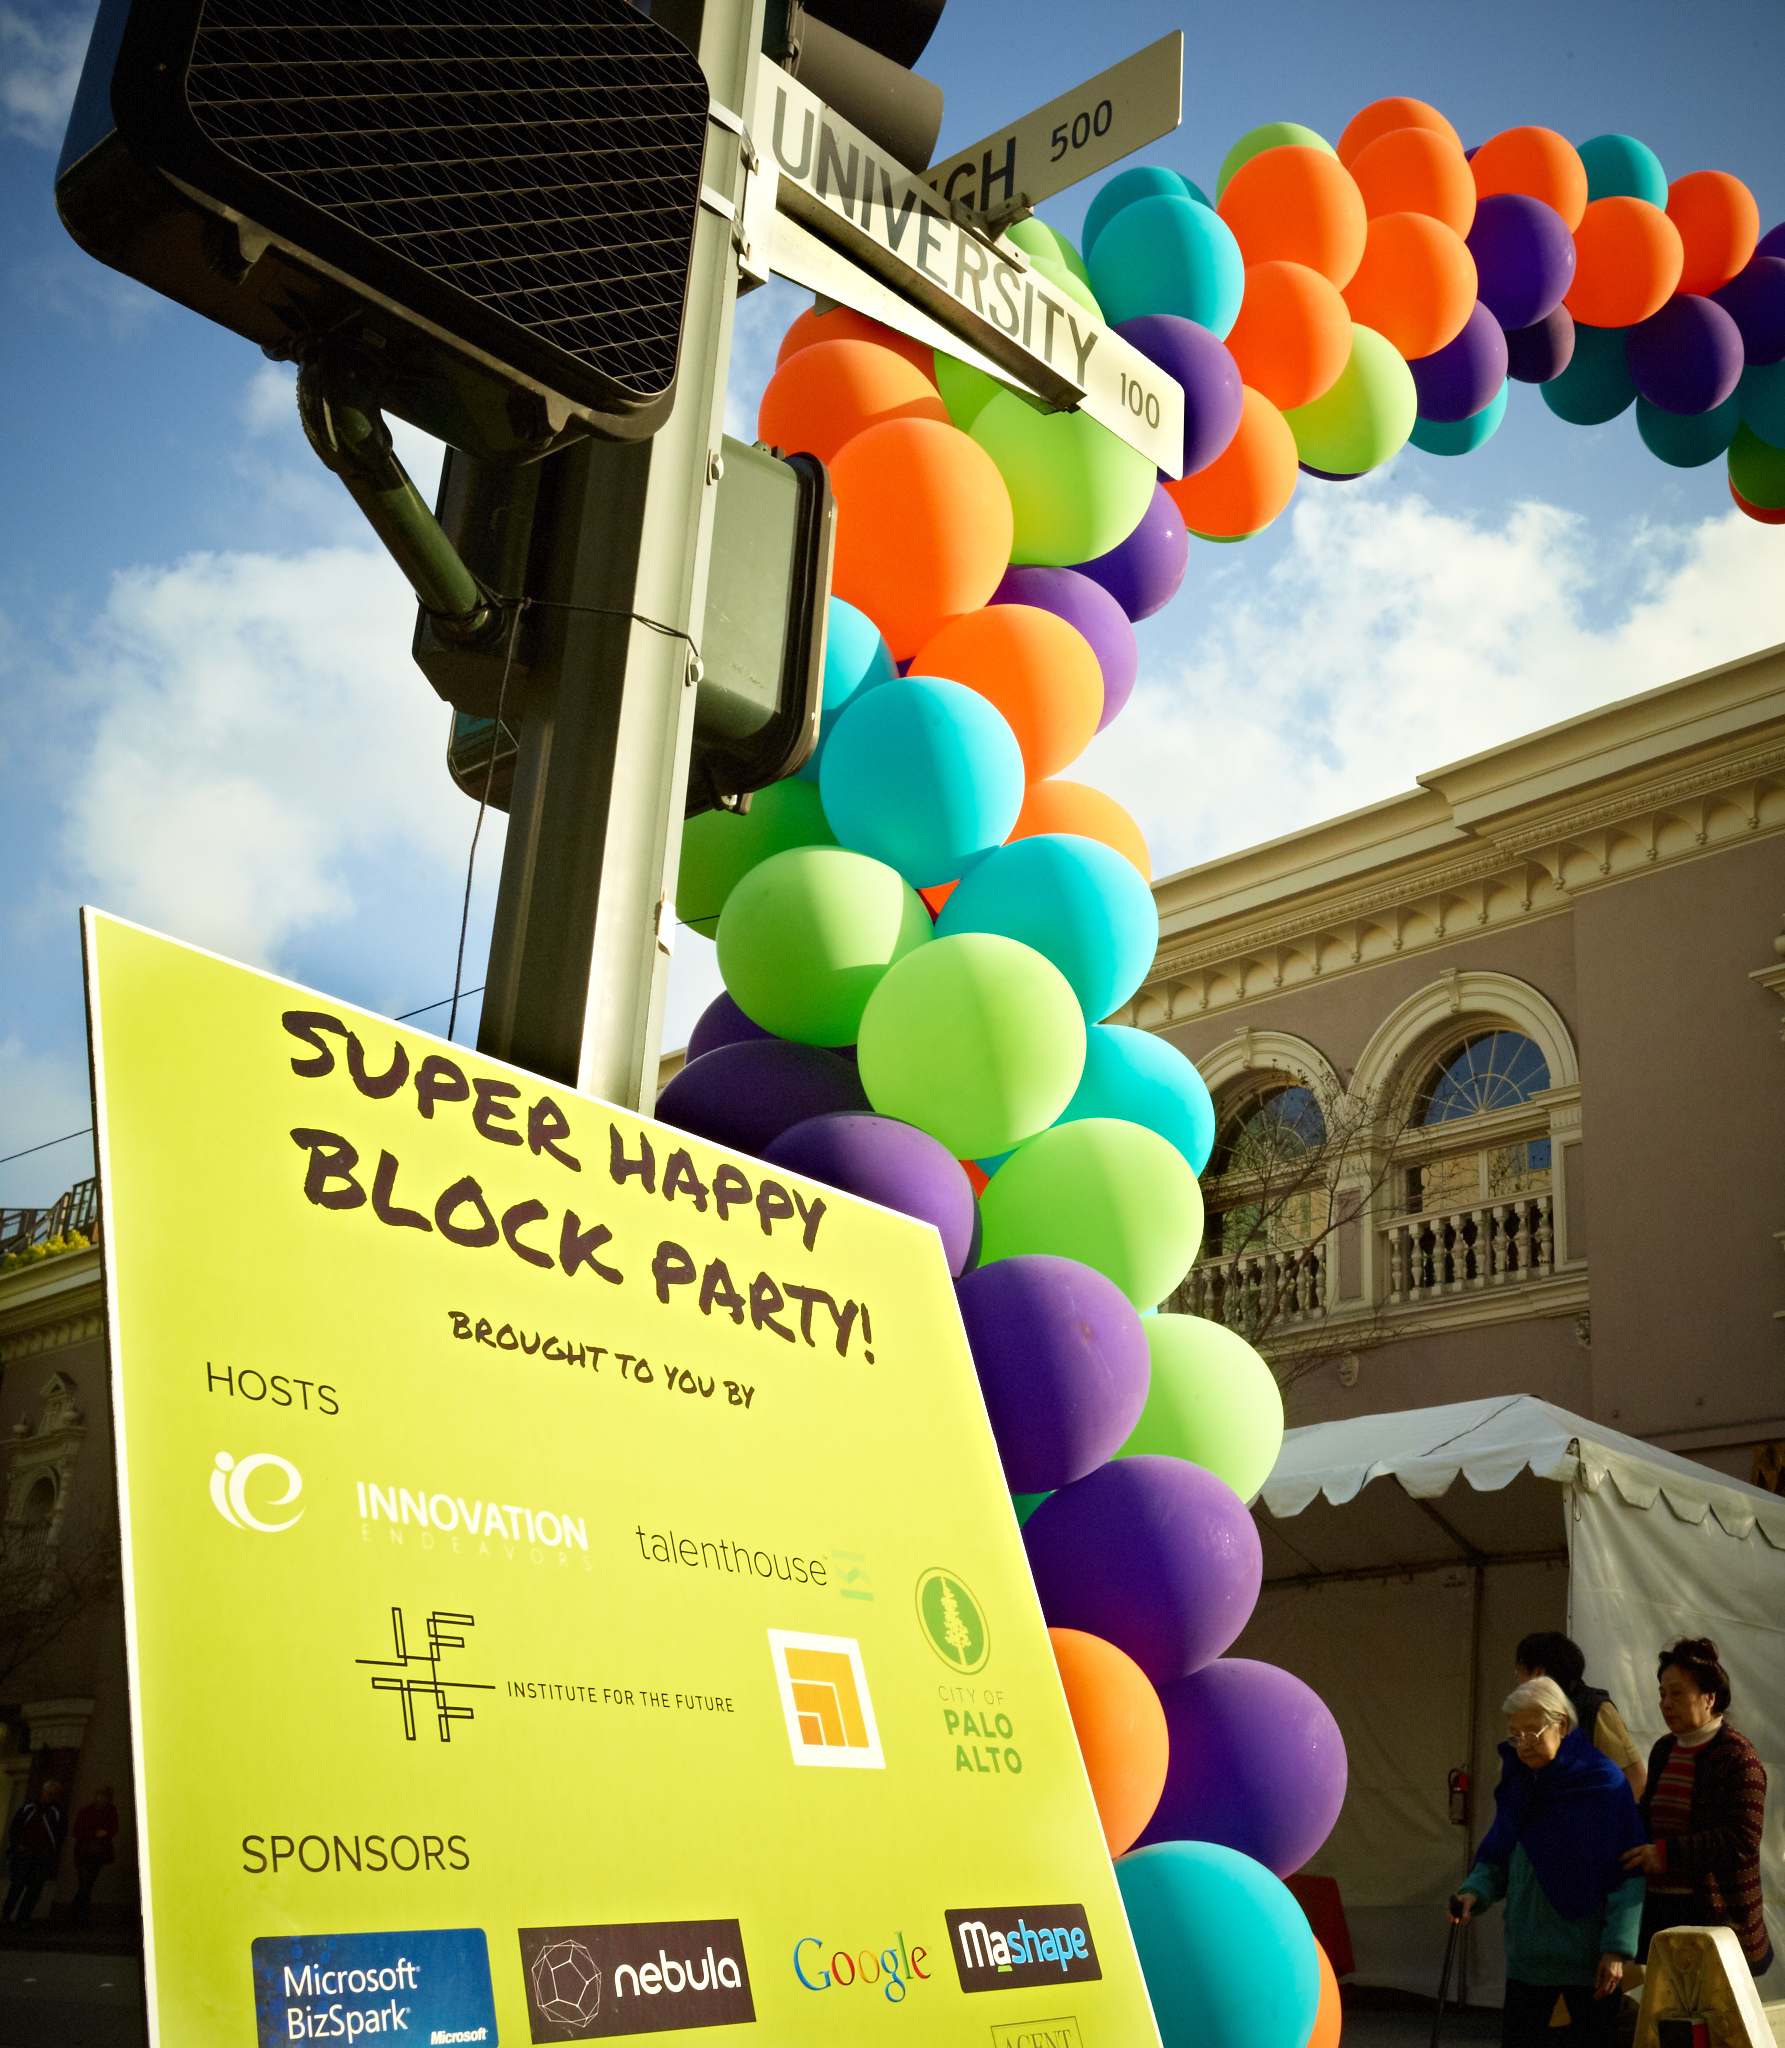 Super Happy Block Party by Peter Adams.